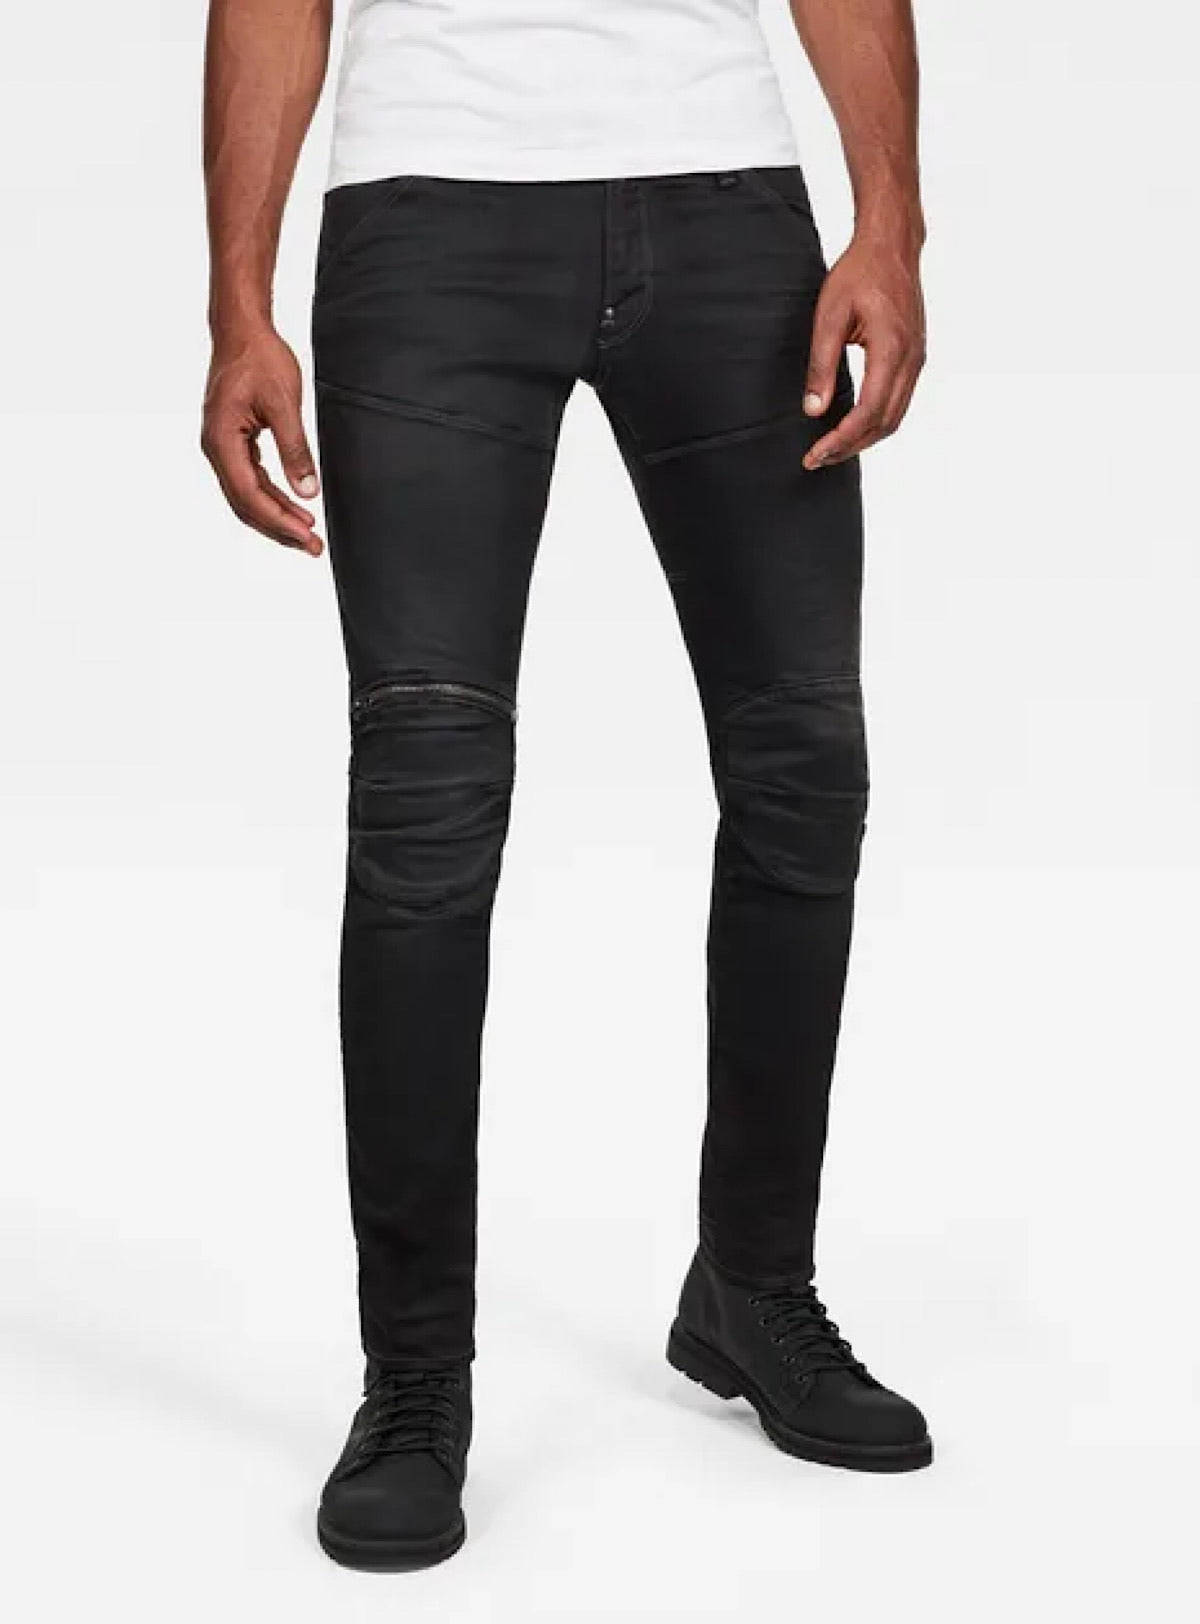 G-Star Jeans - 3D Zip Knee - New Dark Aged - D01252-8172